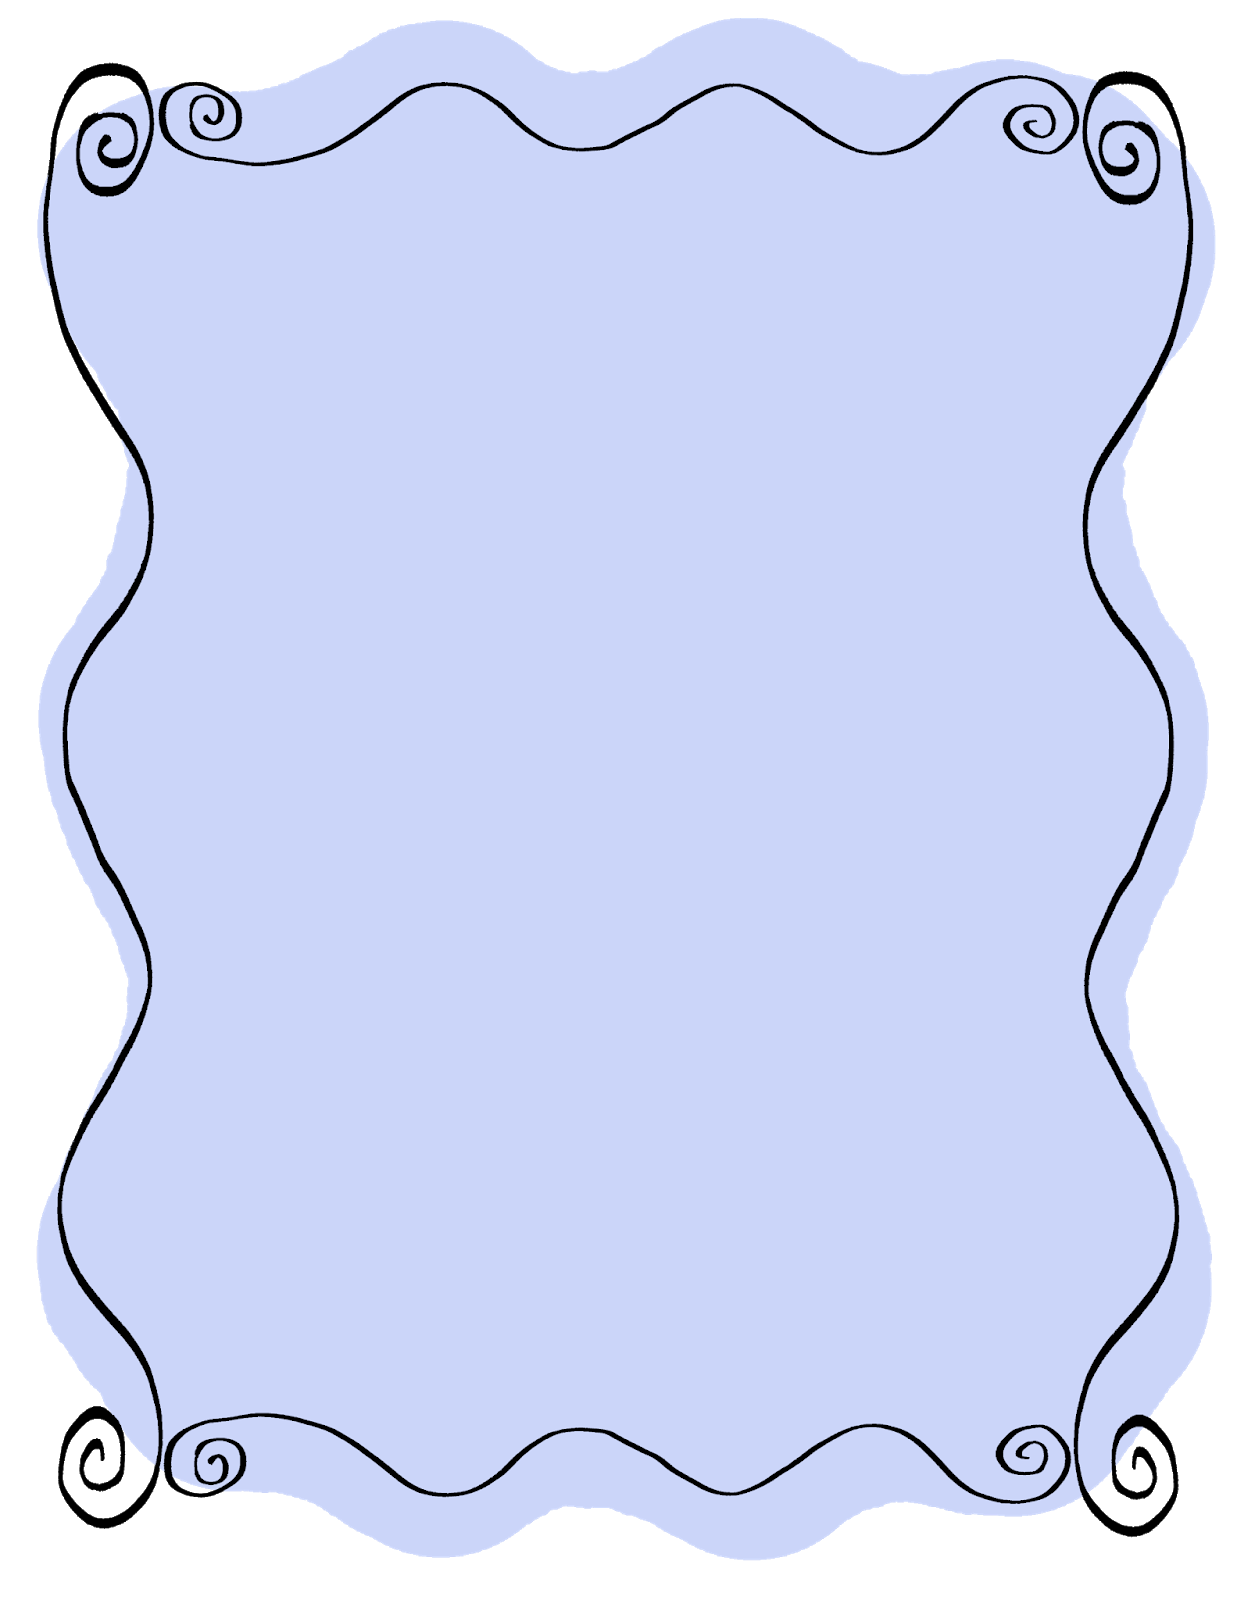 The graphics monarch free. Clipart frame hand